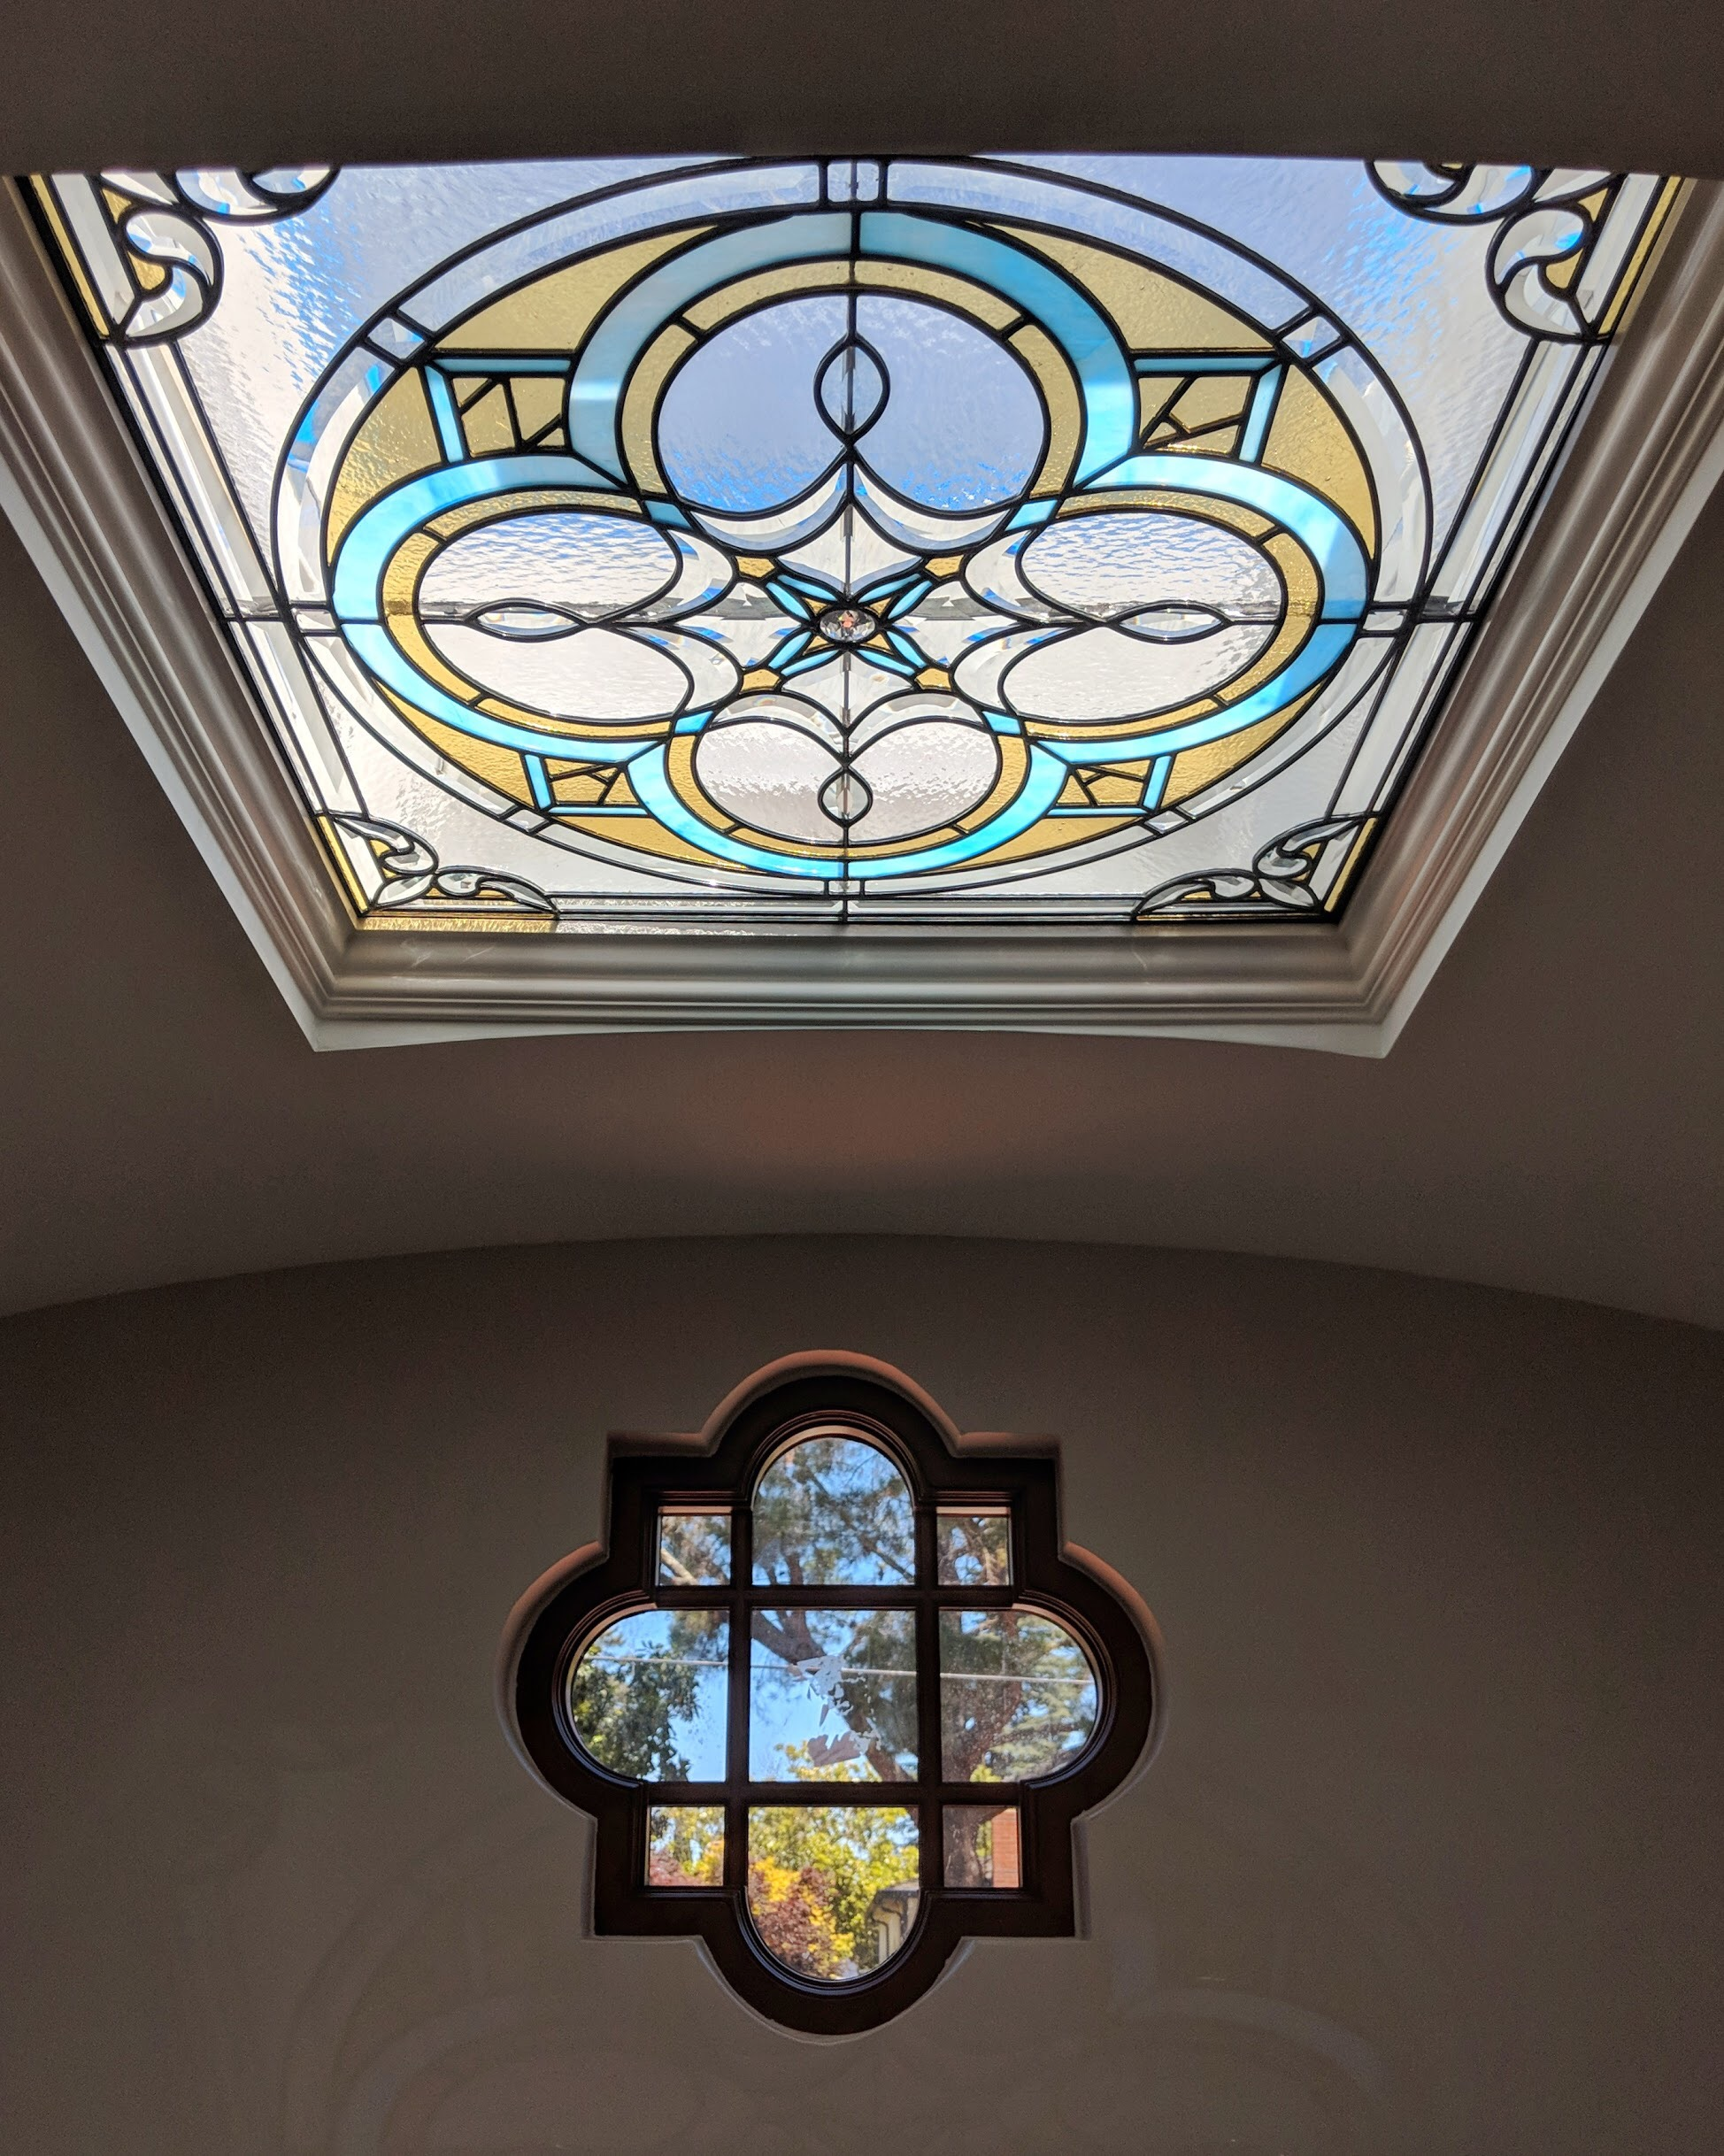 leaded glass stained glass custom design california legacy glass studios spanish quatrefoil design colorful beveled glass skylight rainbows spectrum.JPG